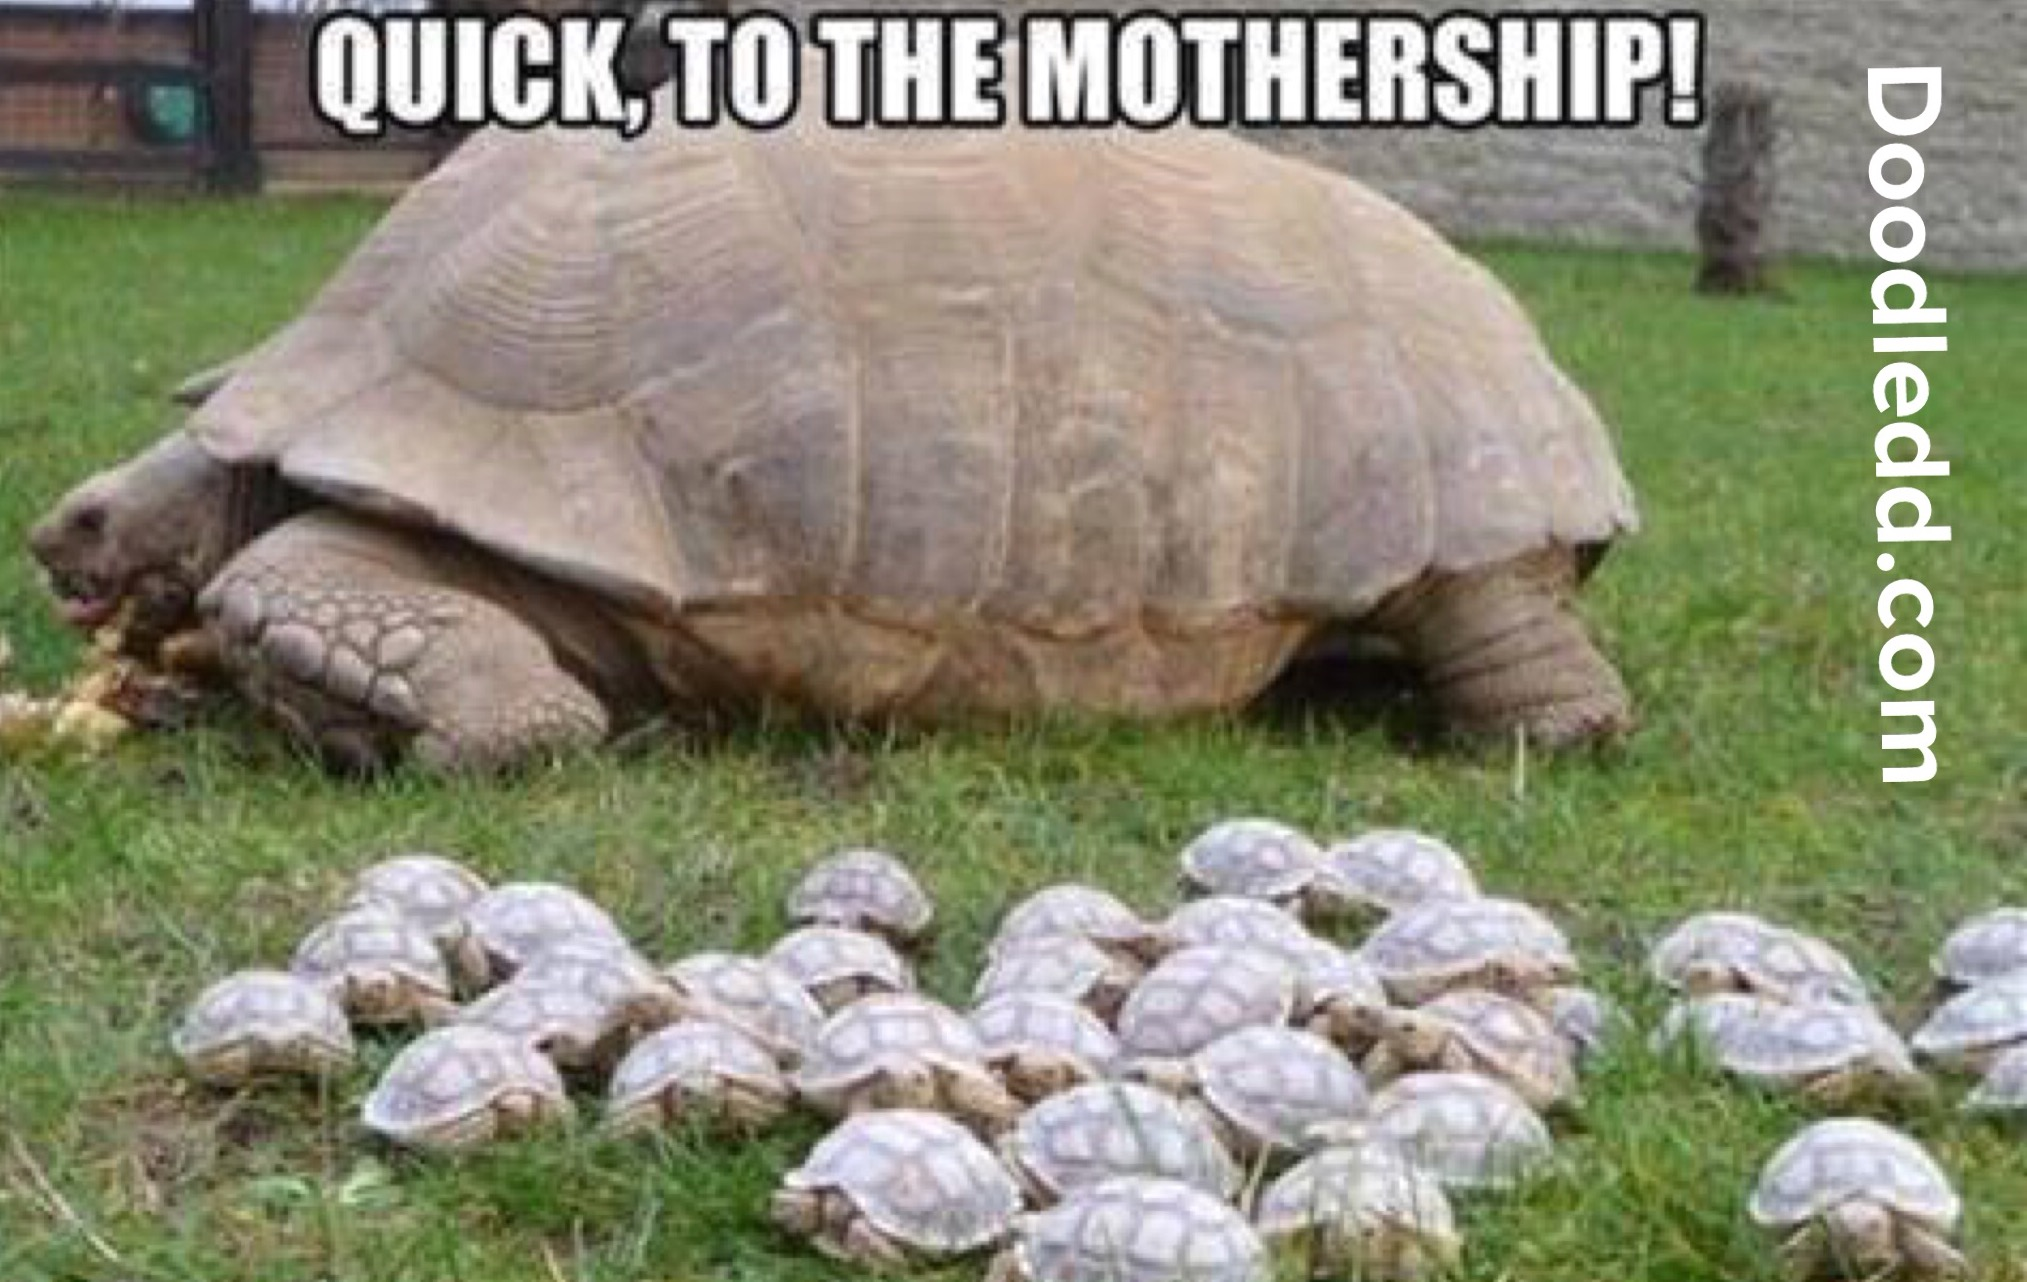 Baby Turtles running to mom - ToTheMothership